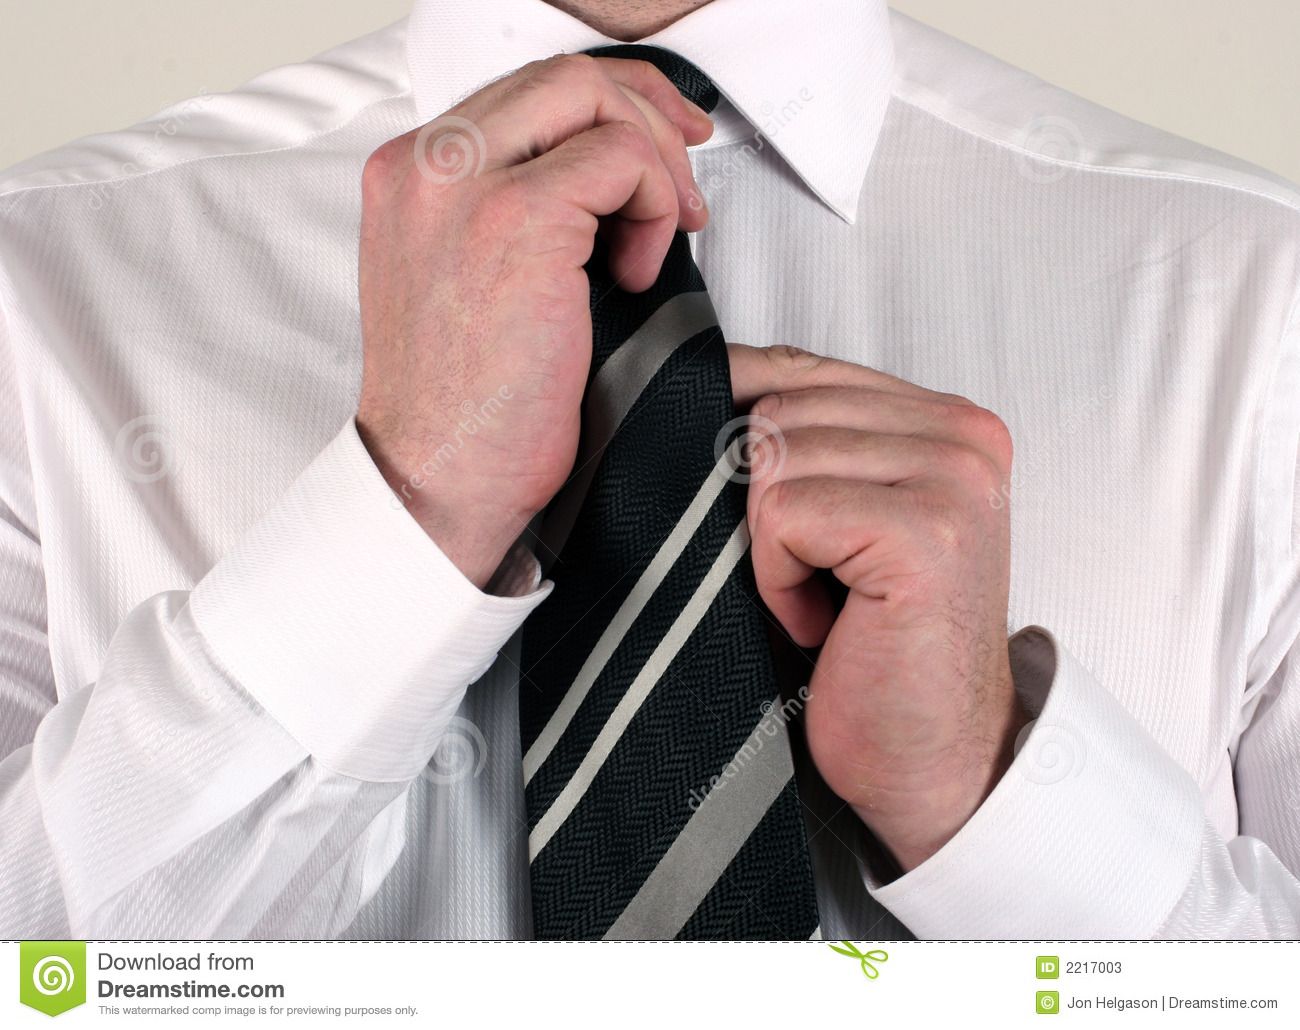 business-man-adjusting-tie-2217003.jpg